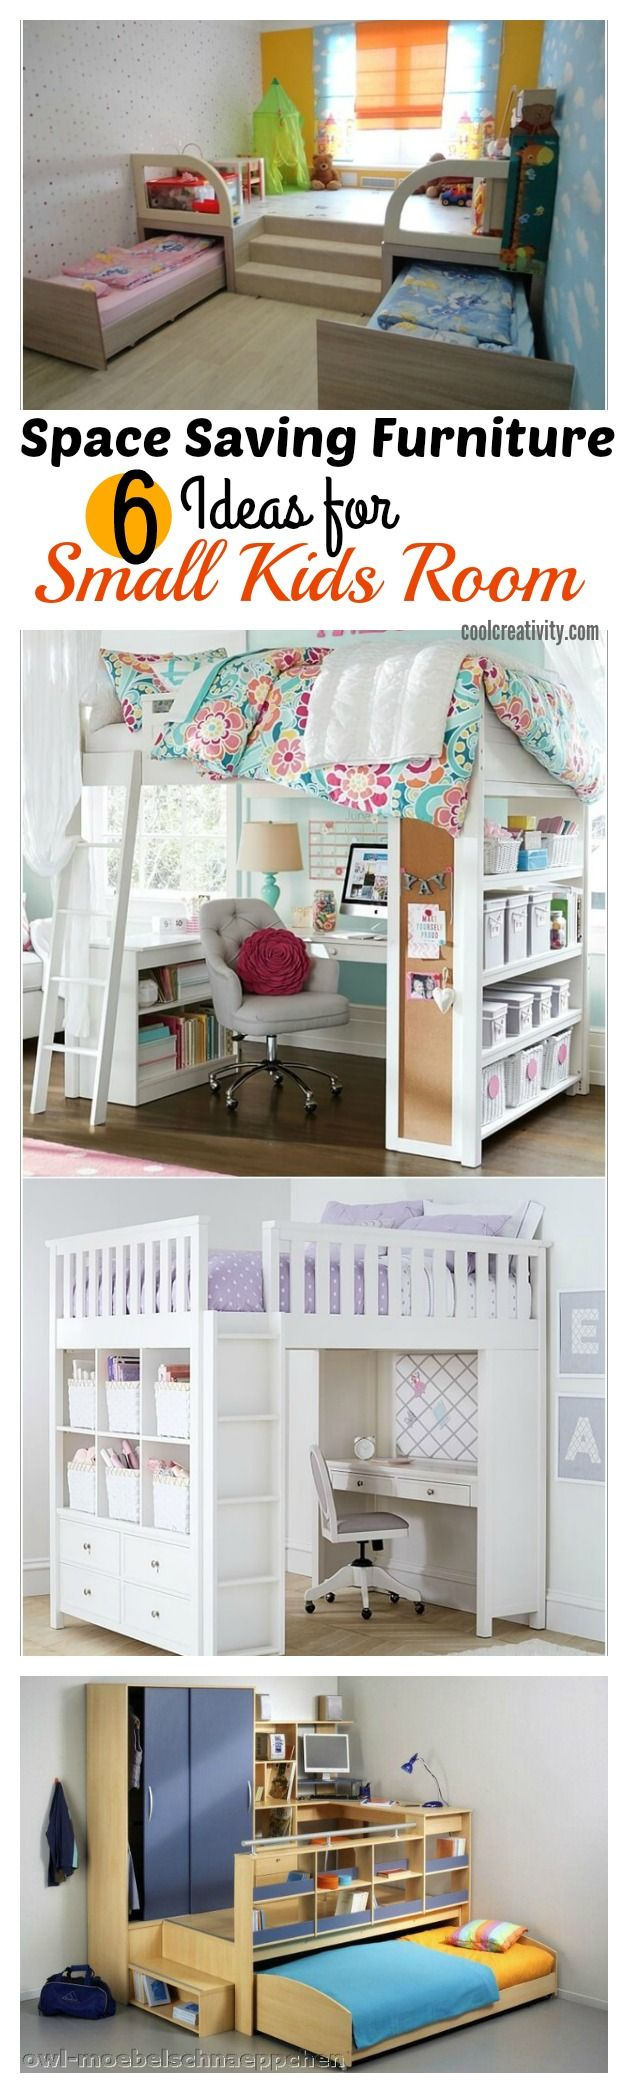 6 space saving furniture ideas for small kids room | space saving